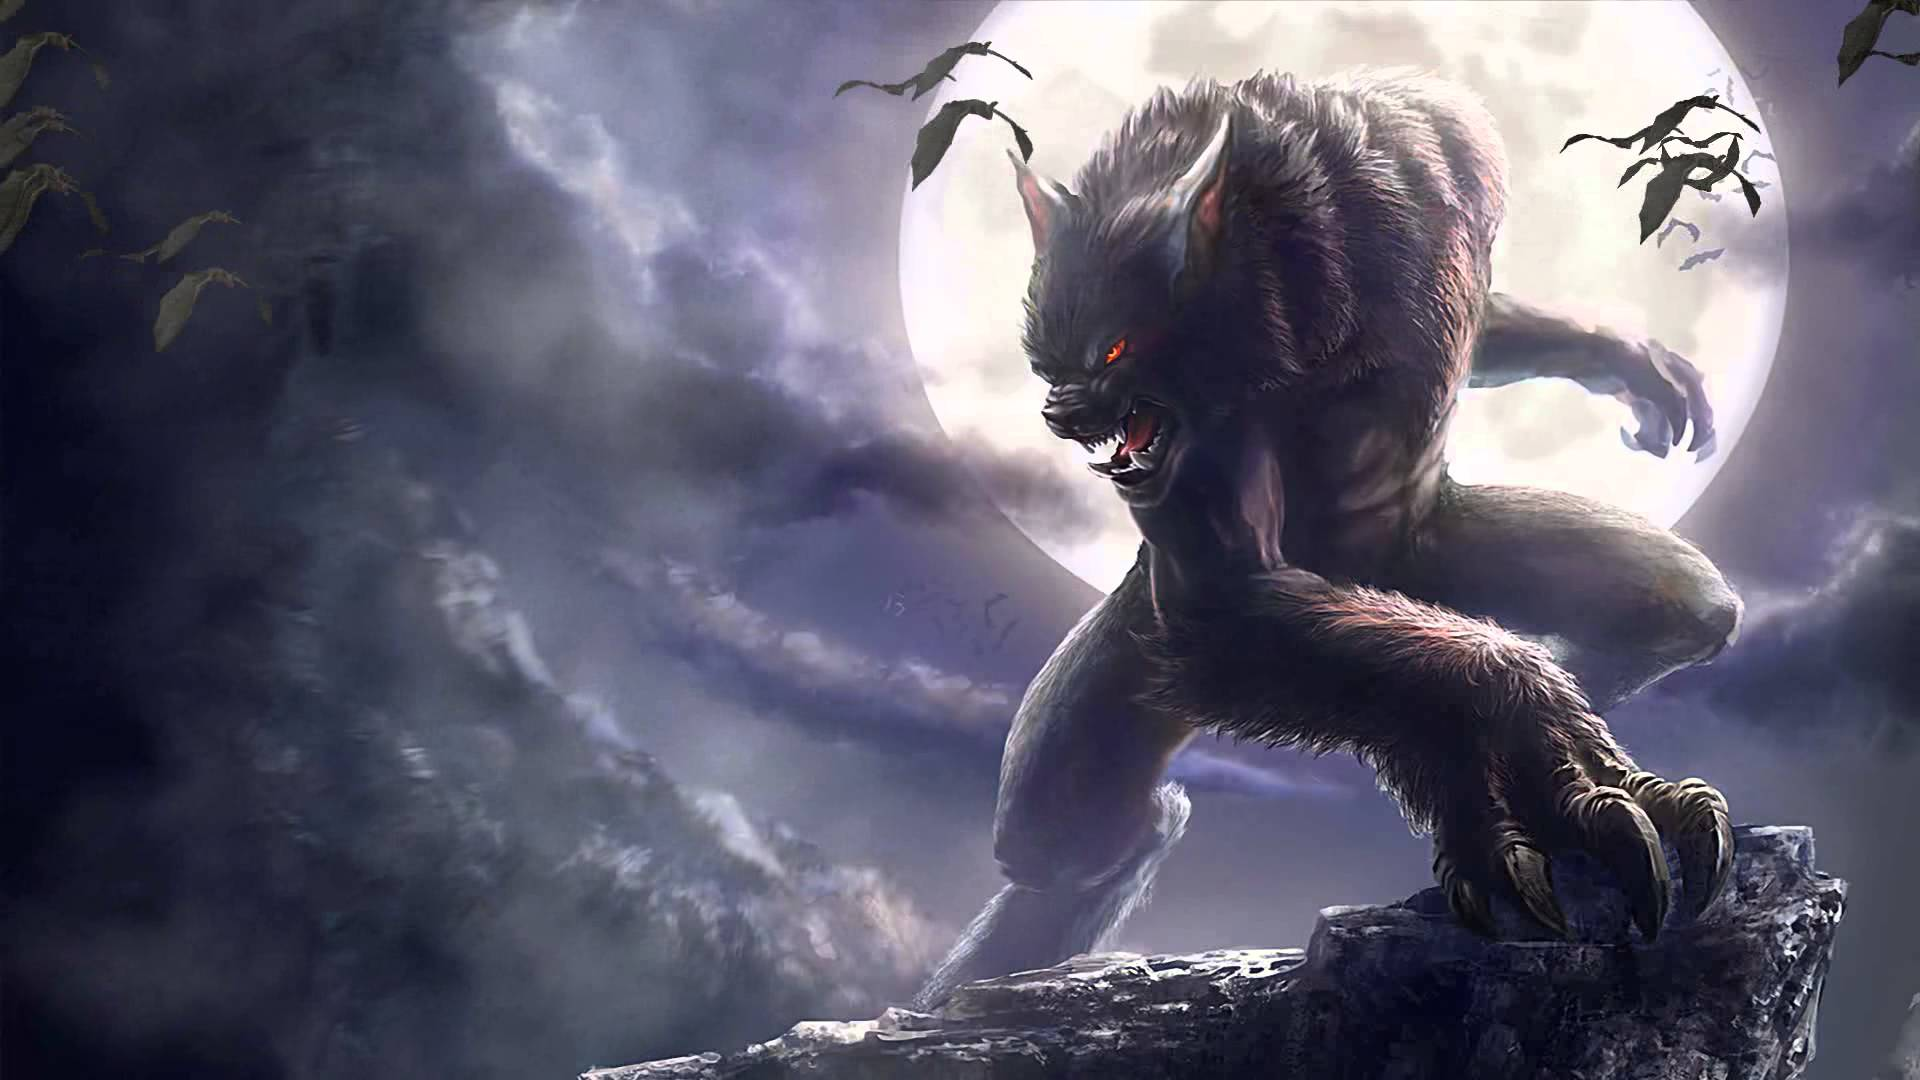 Skyrim werewolf wallpaper hd - photo#12